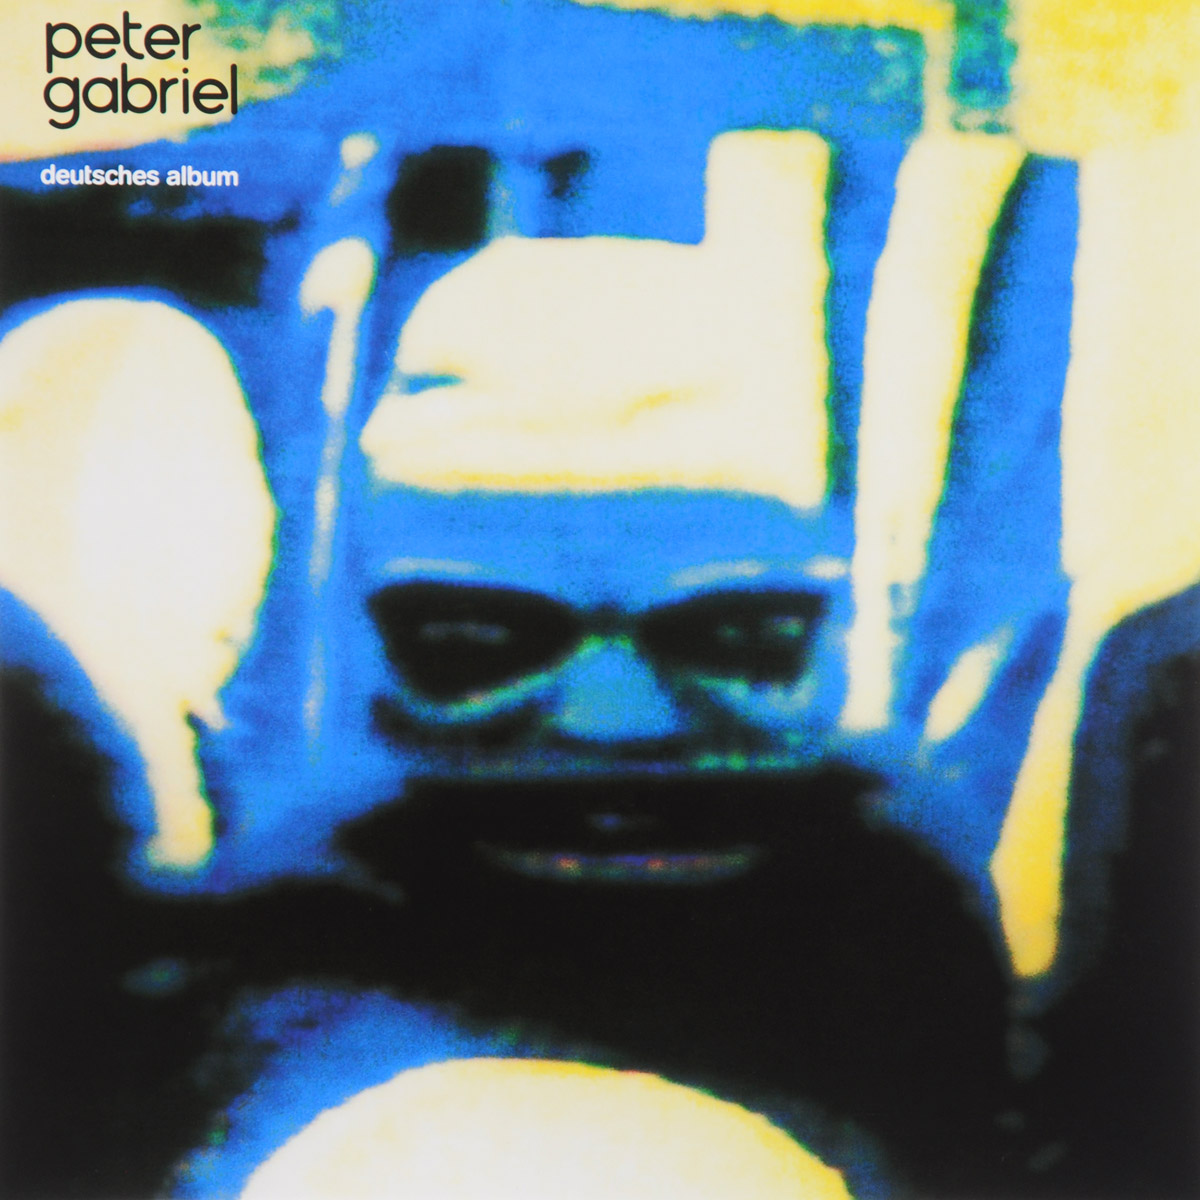 Питер Гэбриэл Peter Gabriel. Peter Gabriel 4. Deutsches Album (LP) питер гэбриэл peter gabriel peter gabriel 4 security lp